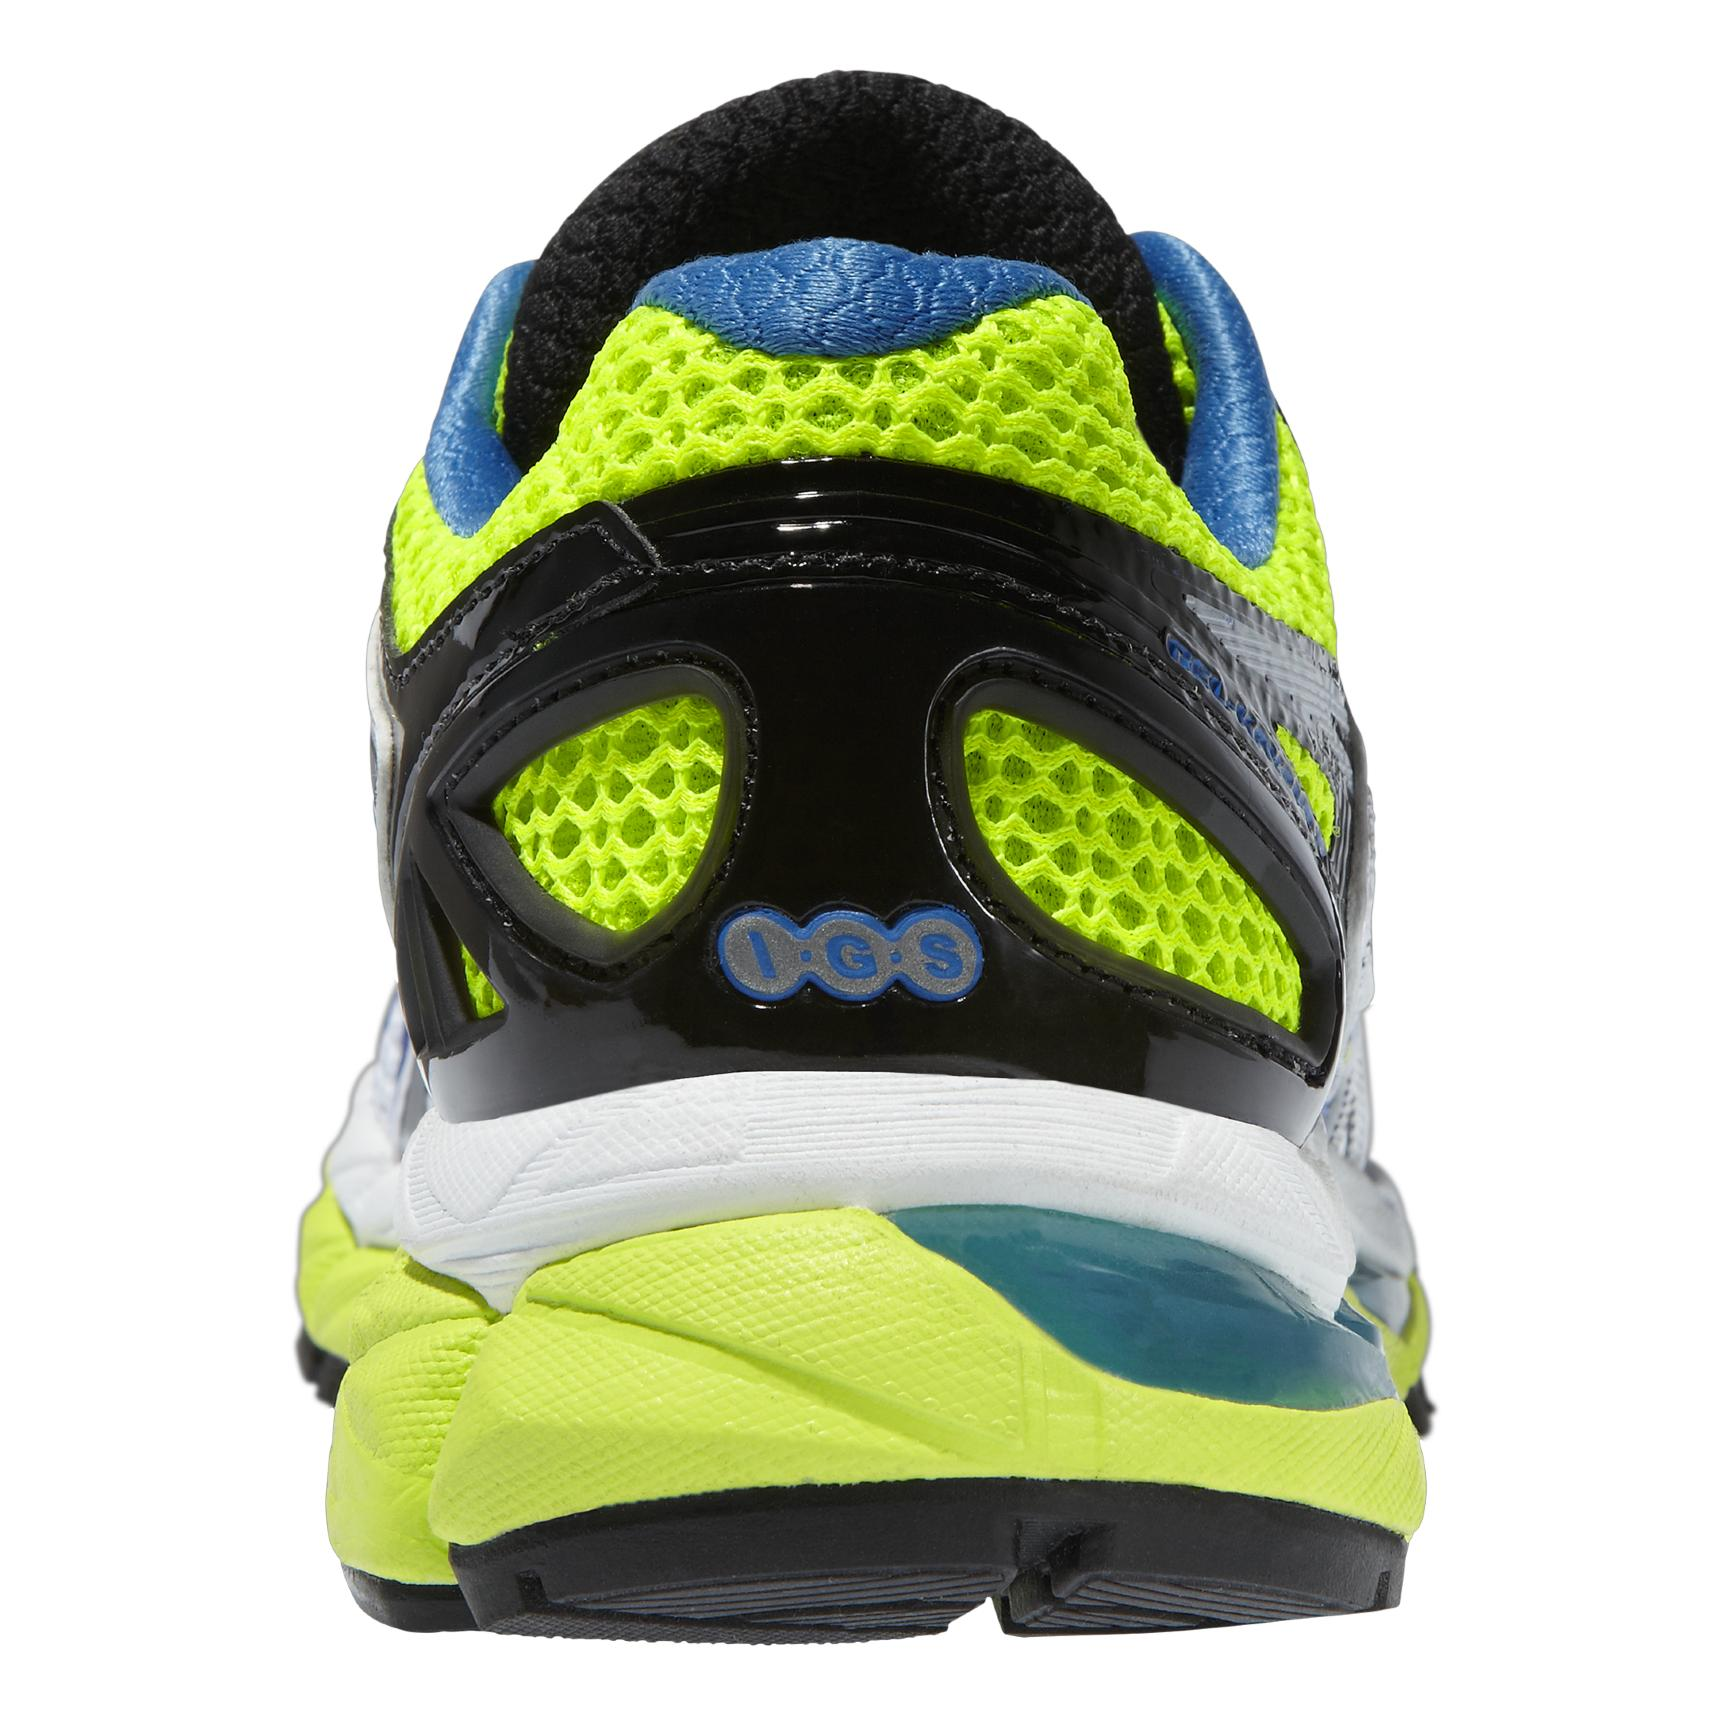 Out Of Stock. Asics Womens GEL-Kayano 21 Running Shoes ...